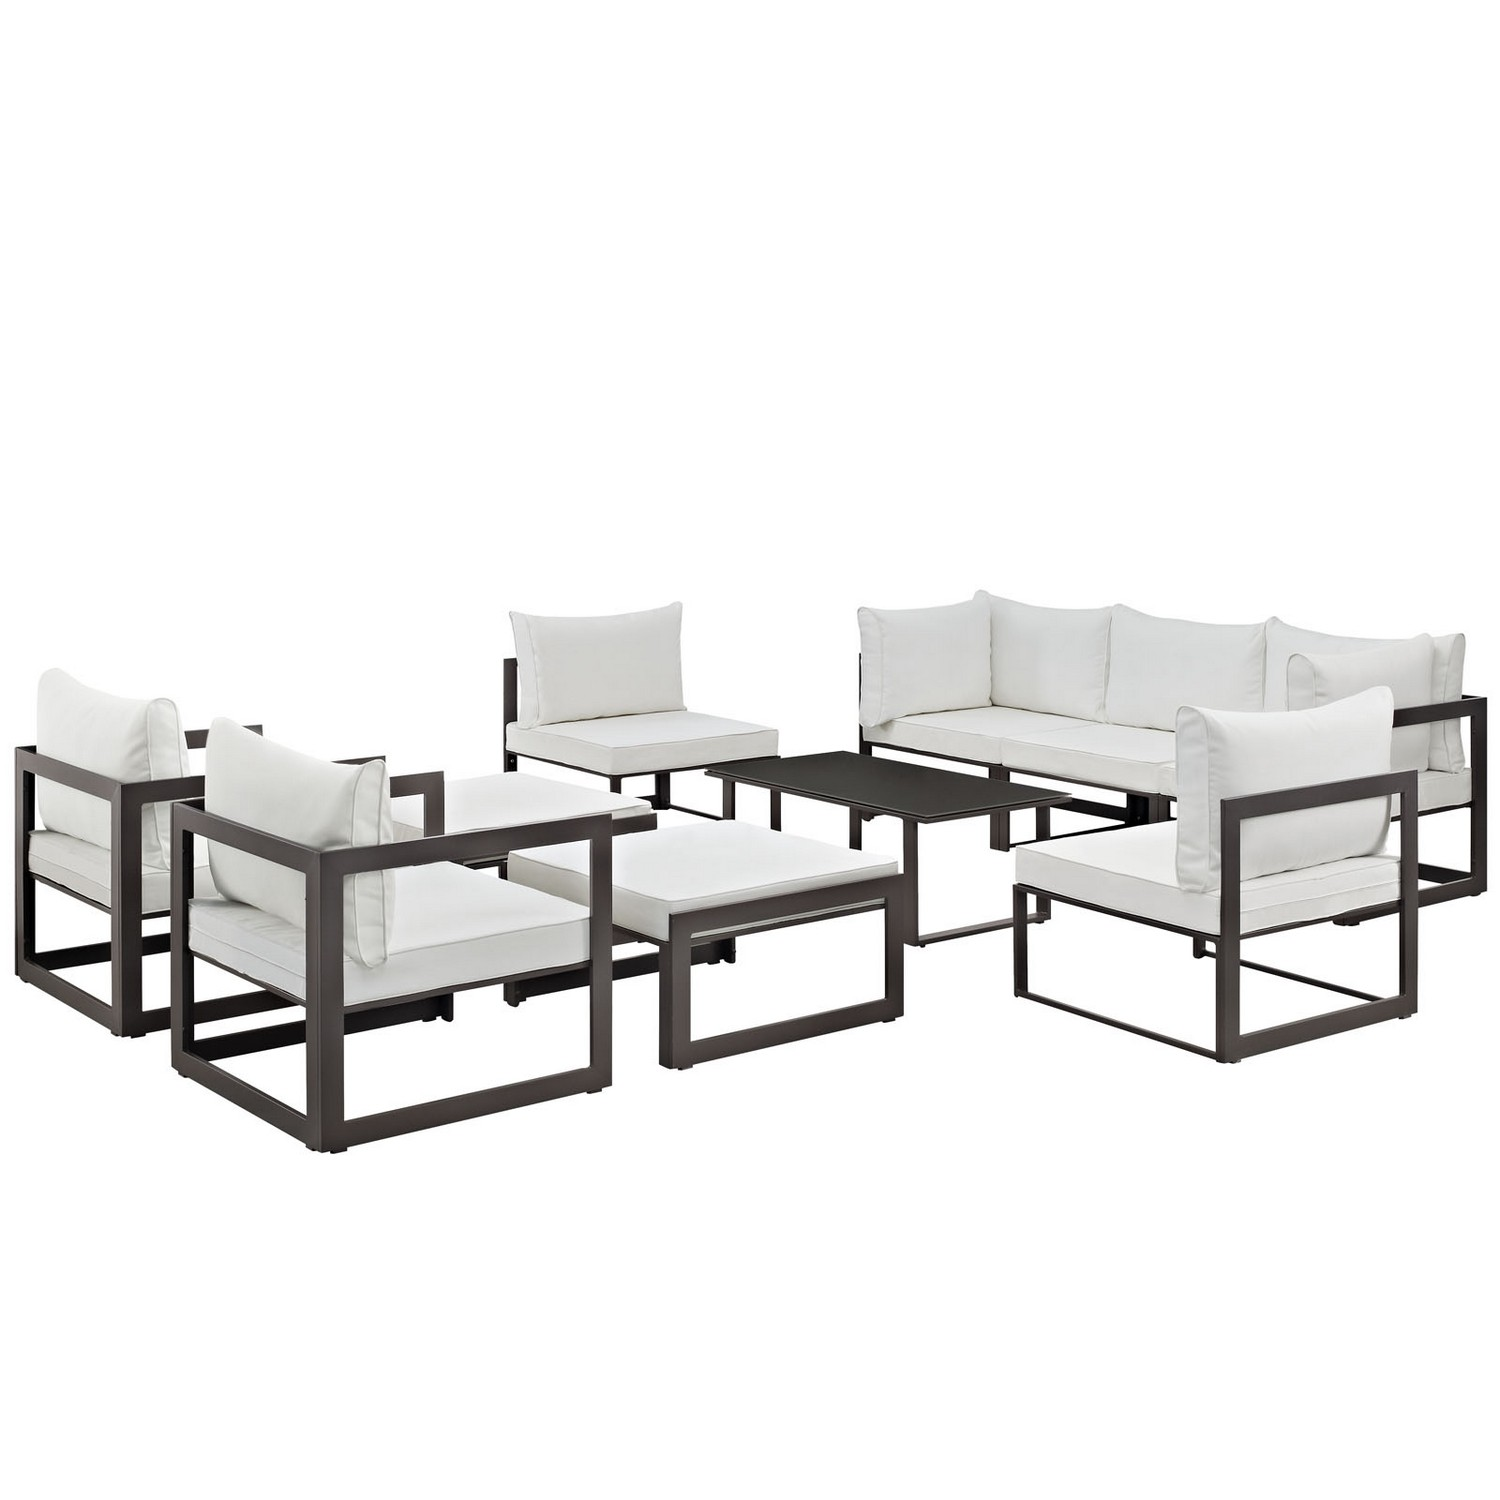 Modway Fortuna 10 Piece Outdoor Patio Sectional Sofa Set - Brown/White